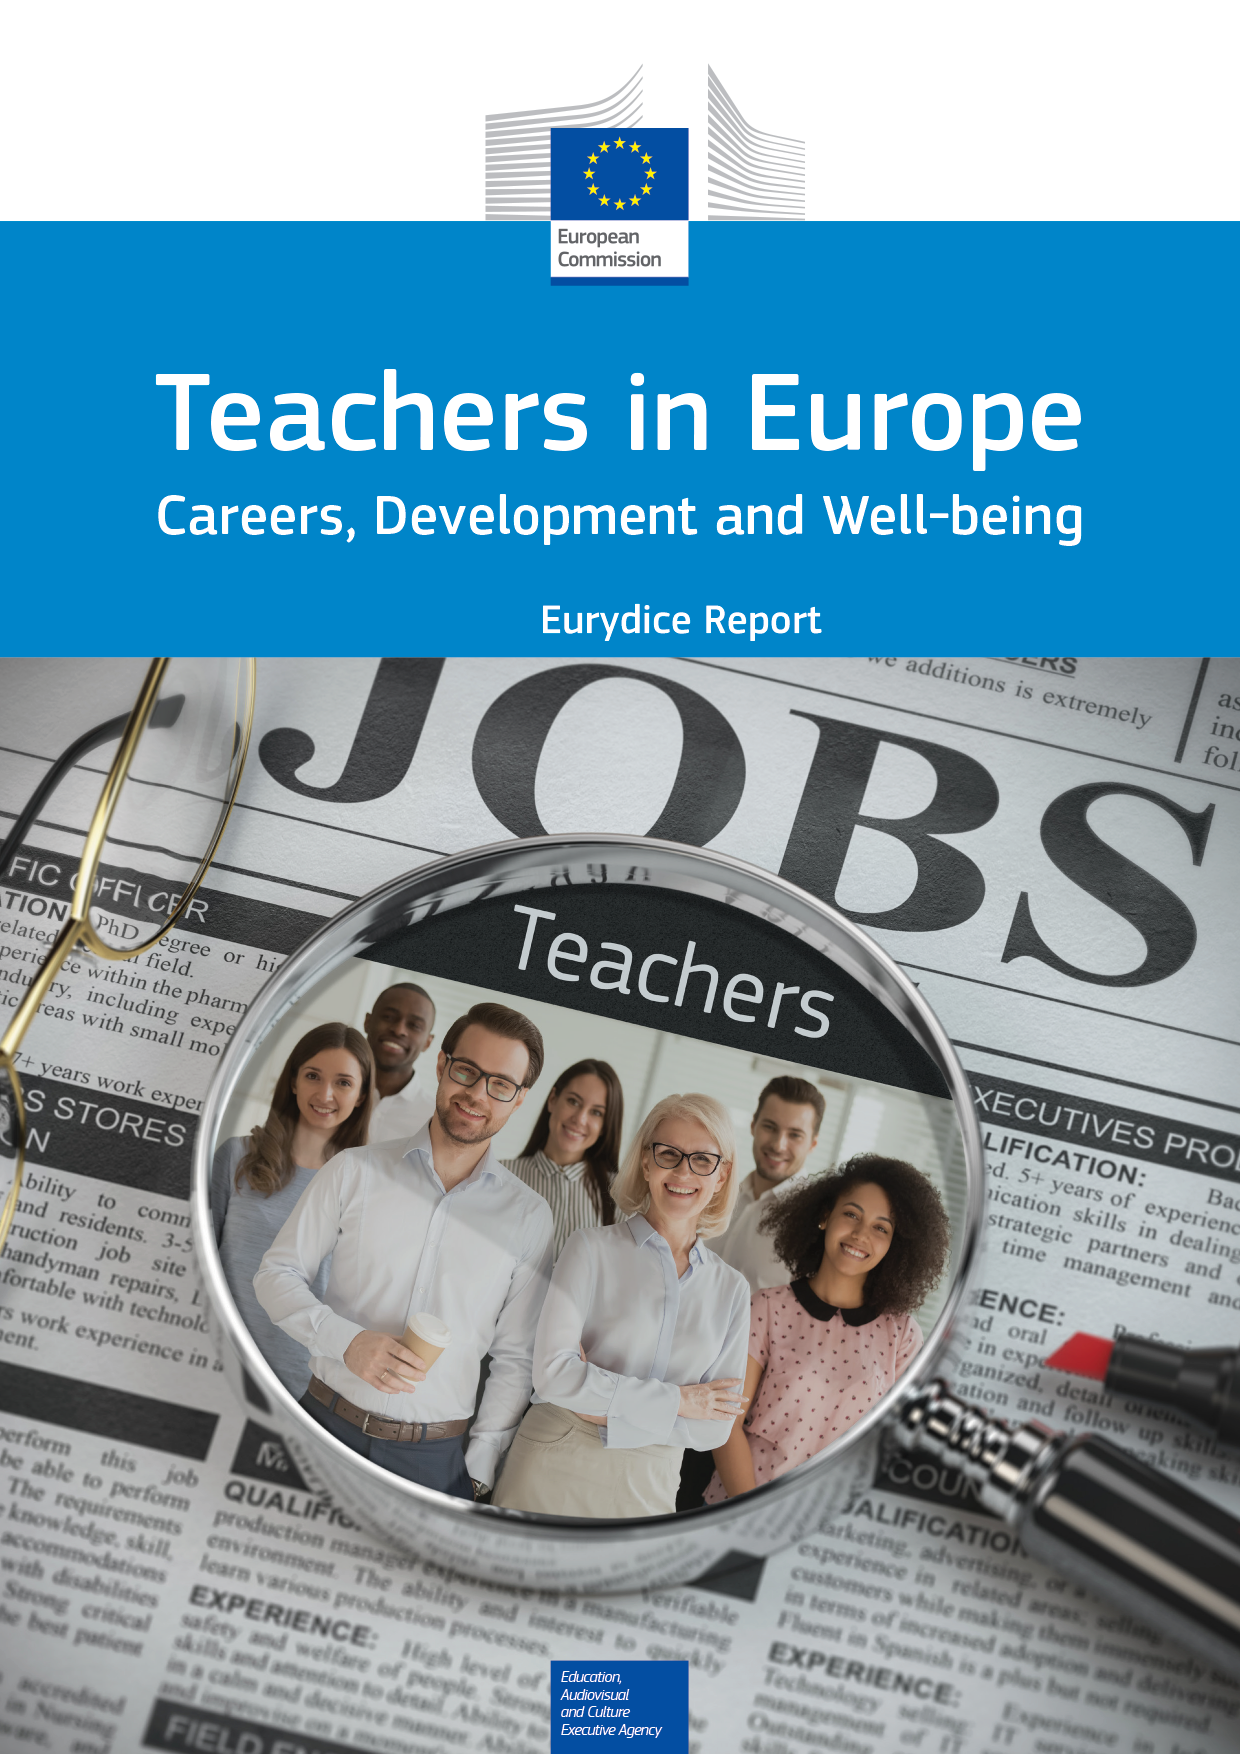 Teachers in Europe Vignette